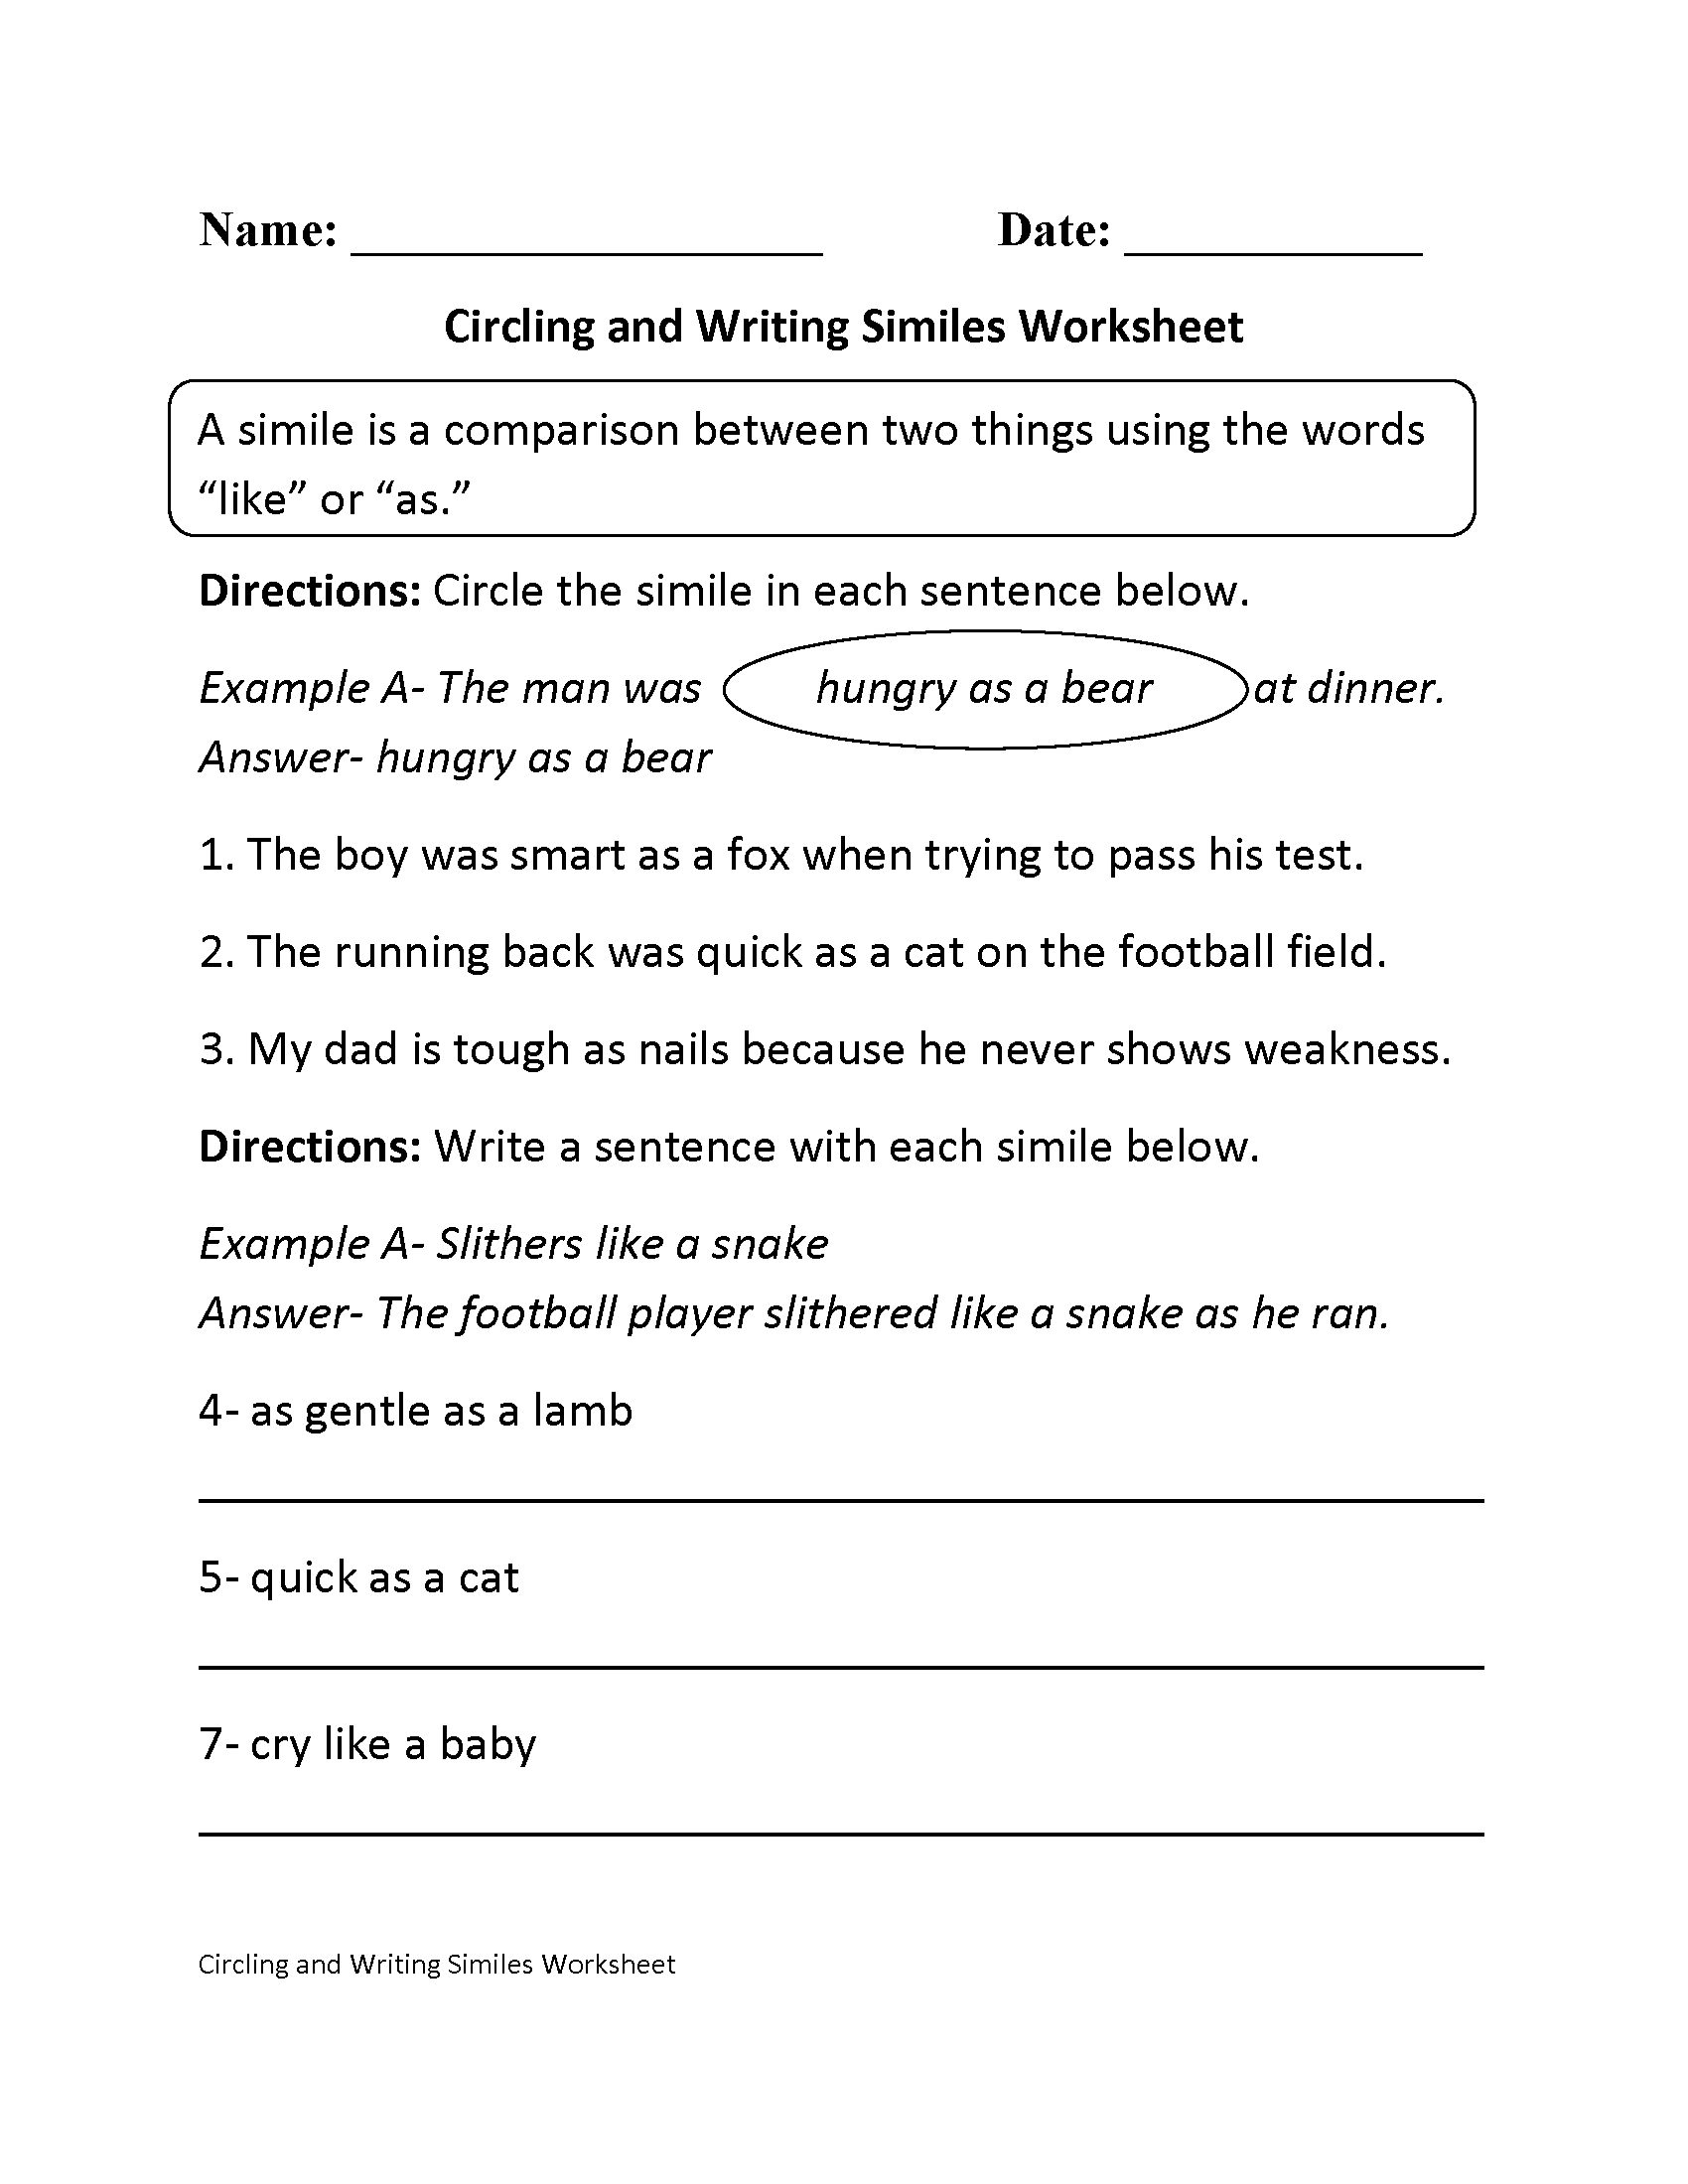 Circling And Writing Similes Worksheet